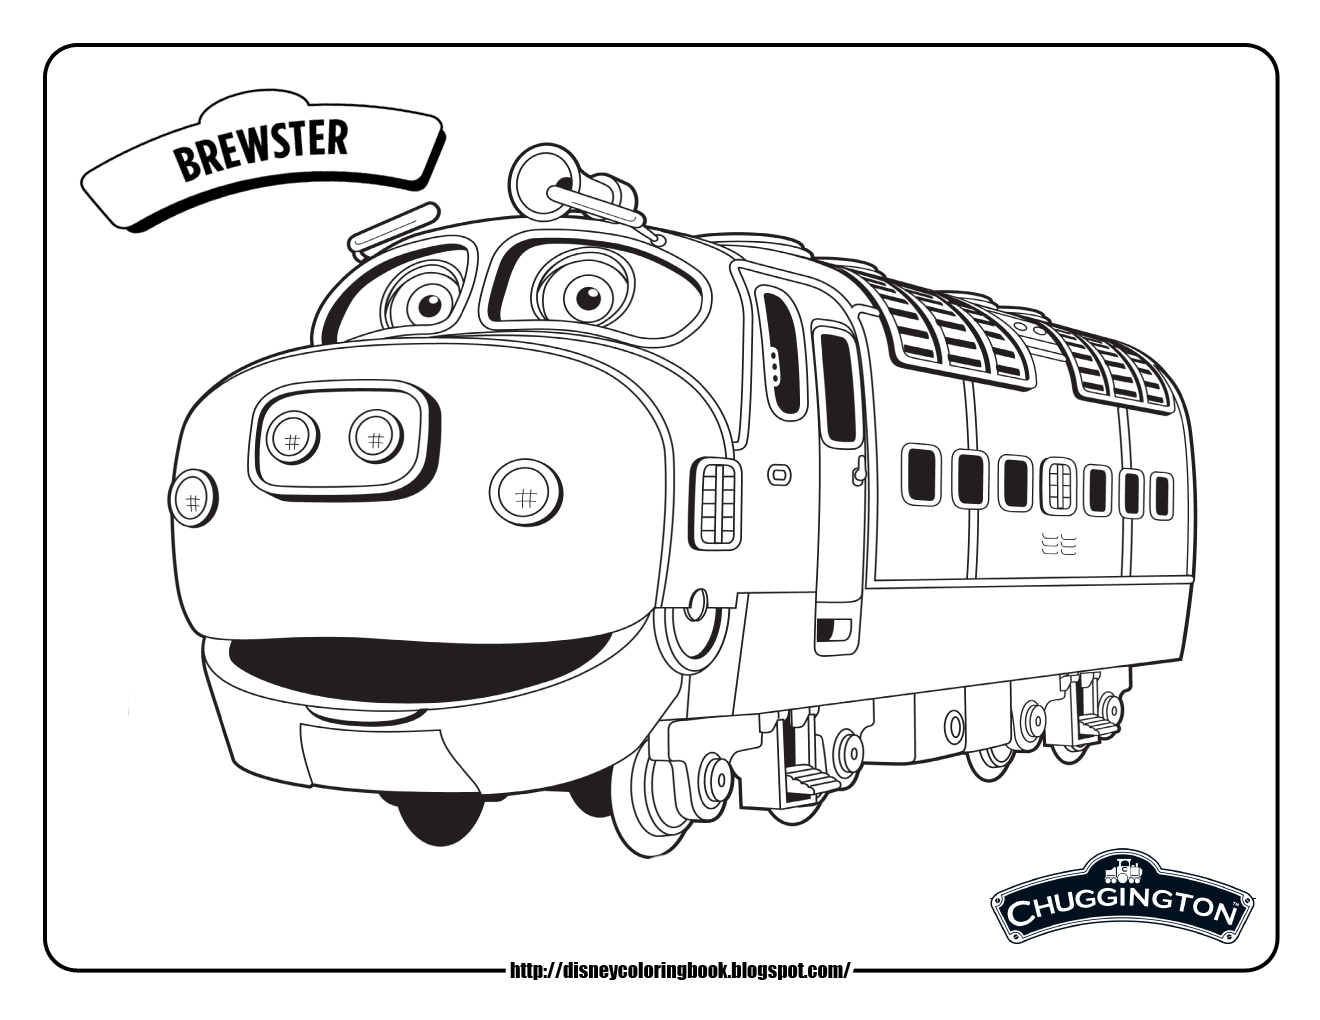 Chuggington 1 Free Disney Coloring Sheets Learn To Coloring Chuggington Colouring Pages